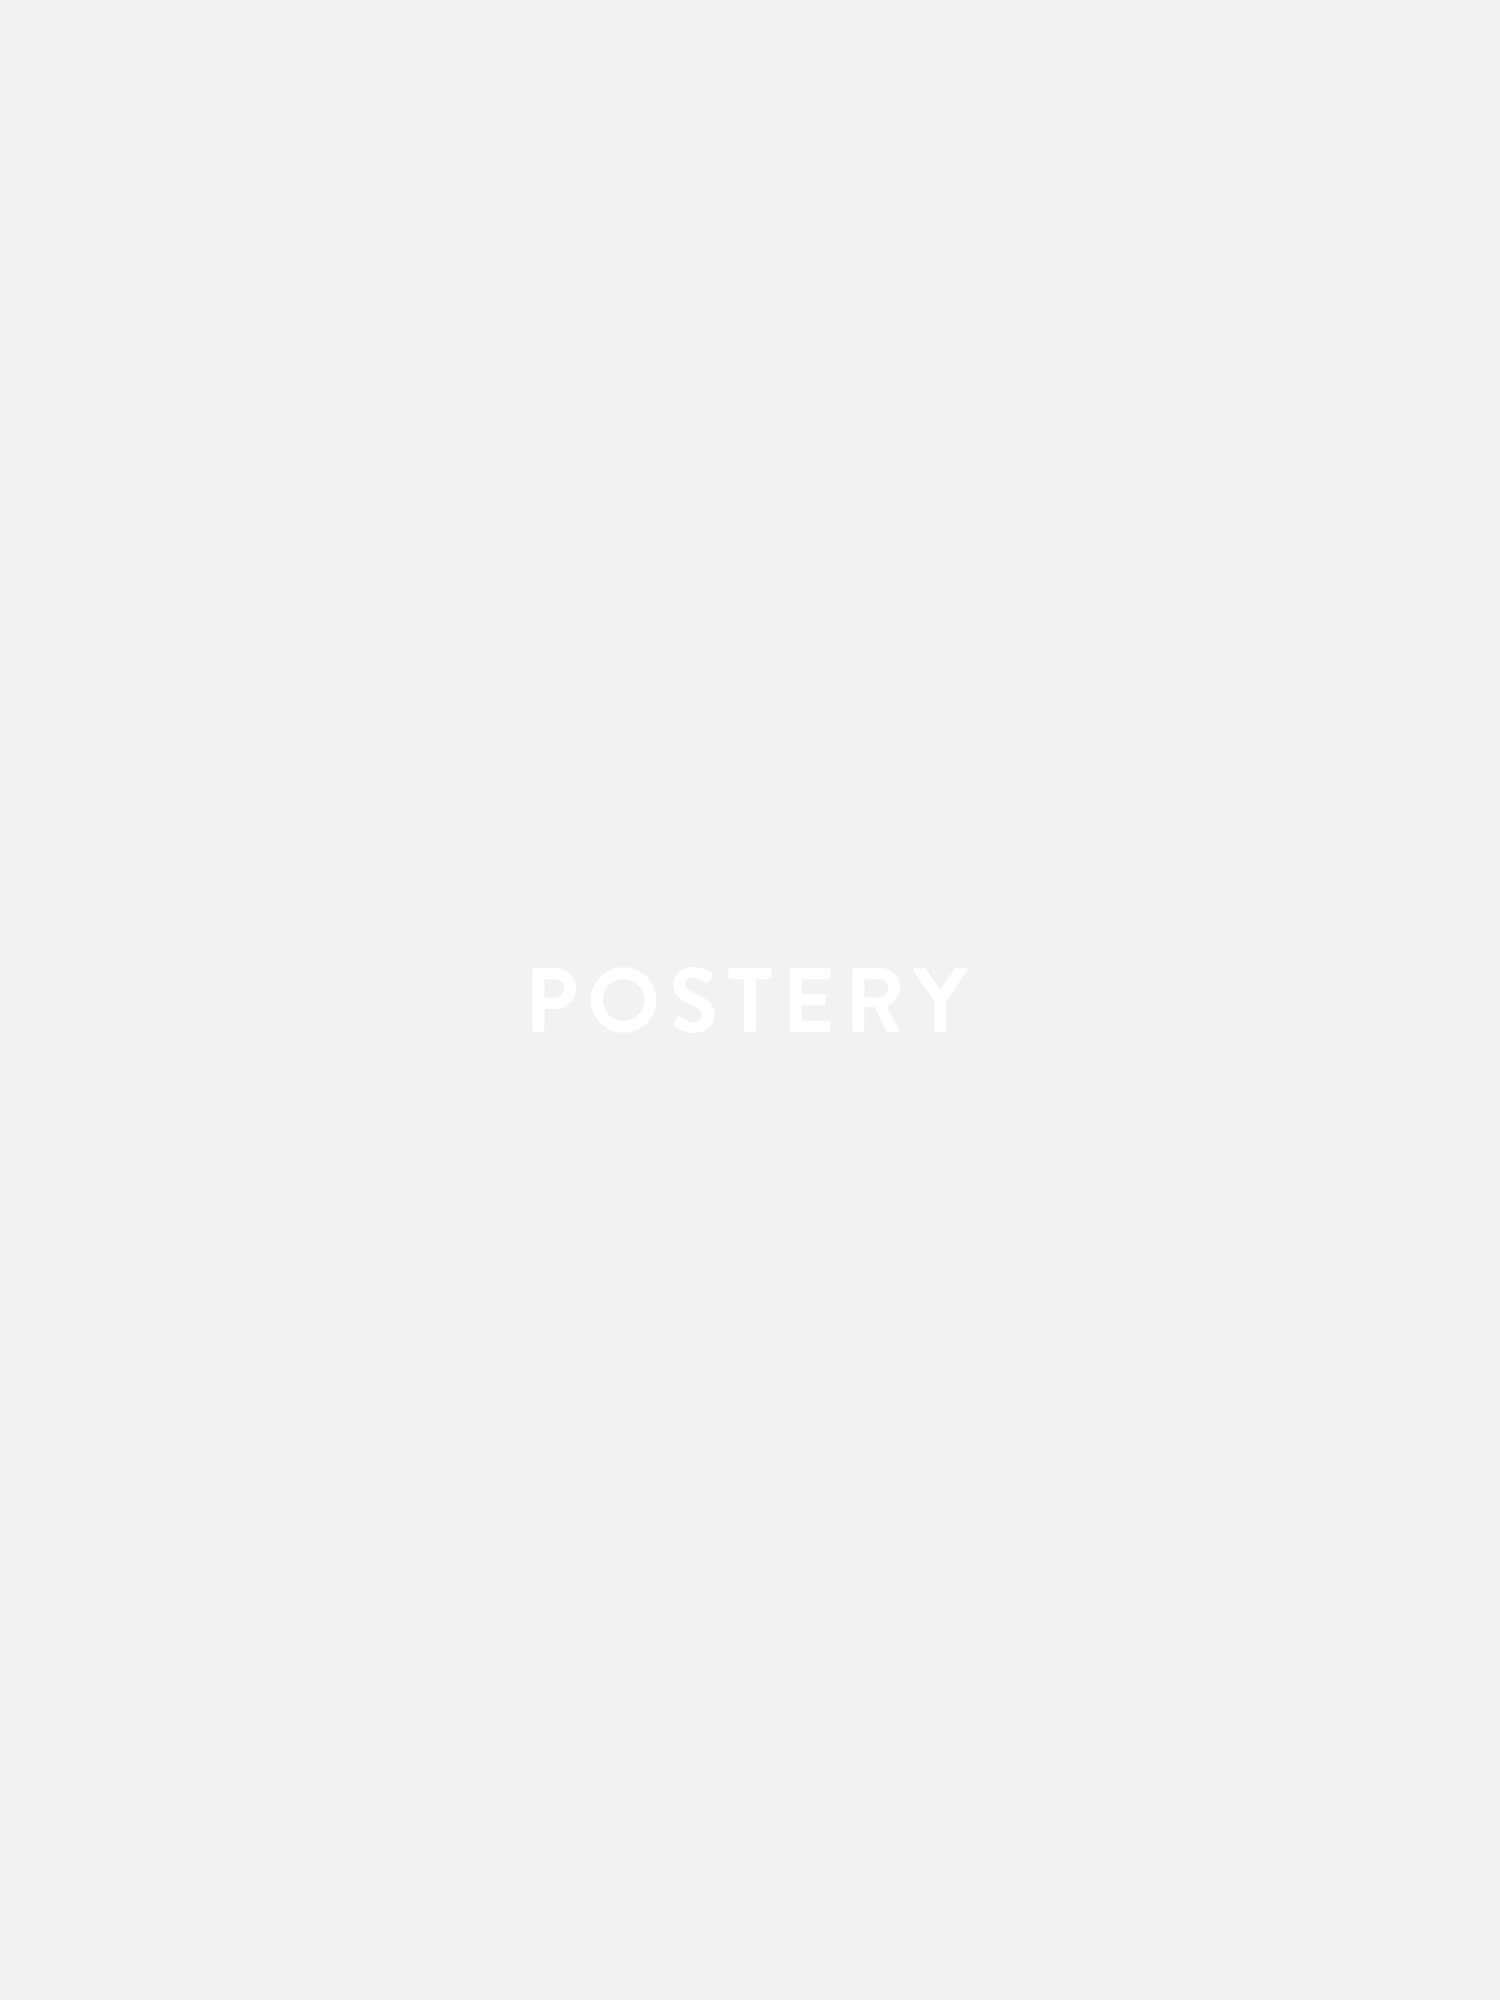 Agave Plant Close-up Poster